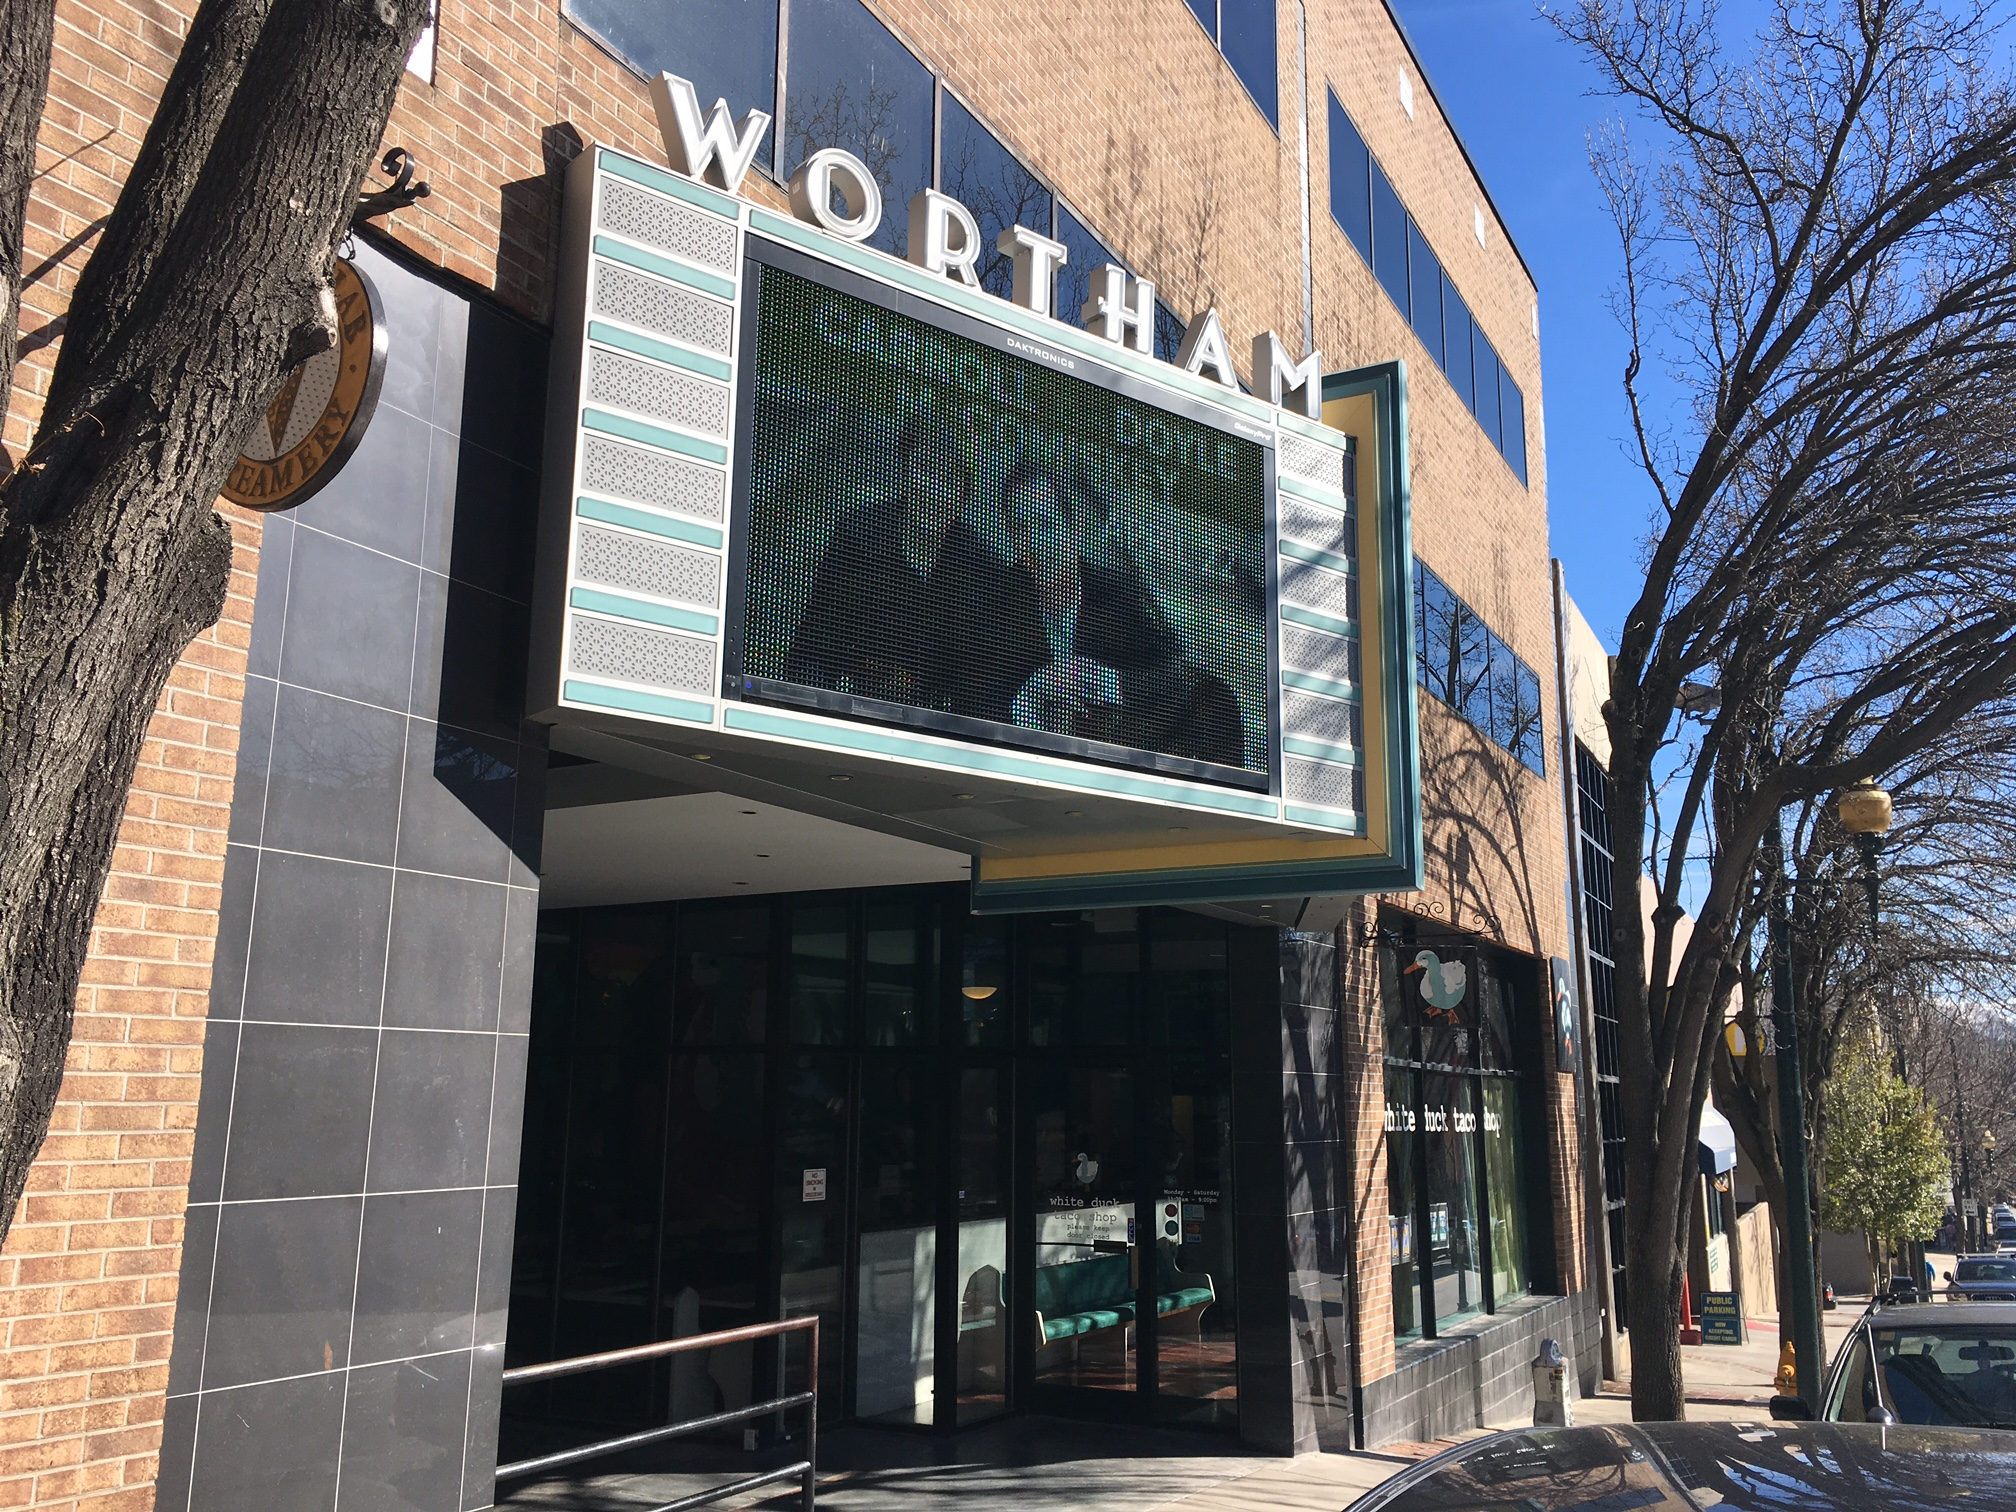 With funding push, Asheville's Diana Wortham Theatre to add two new venues